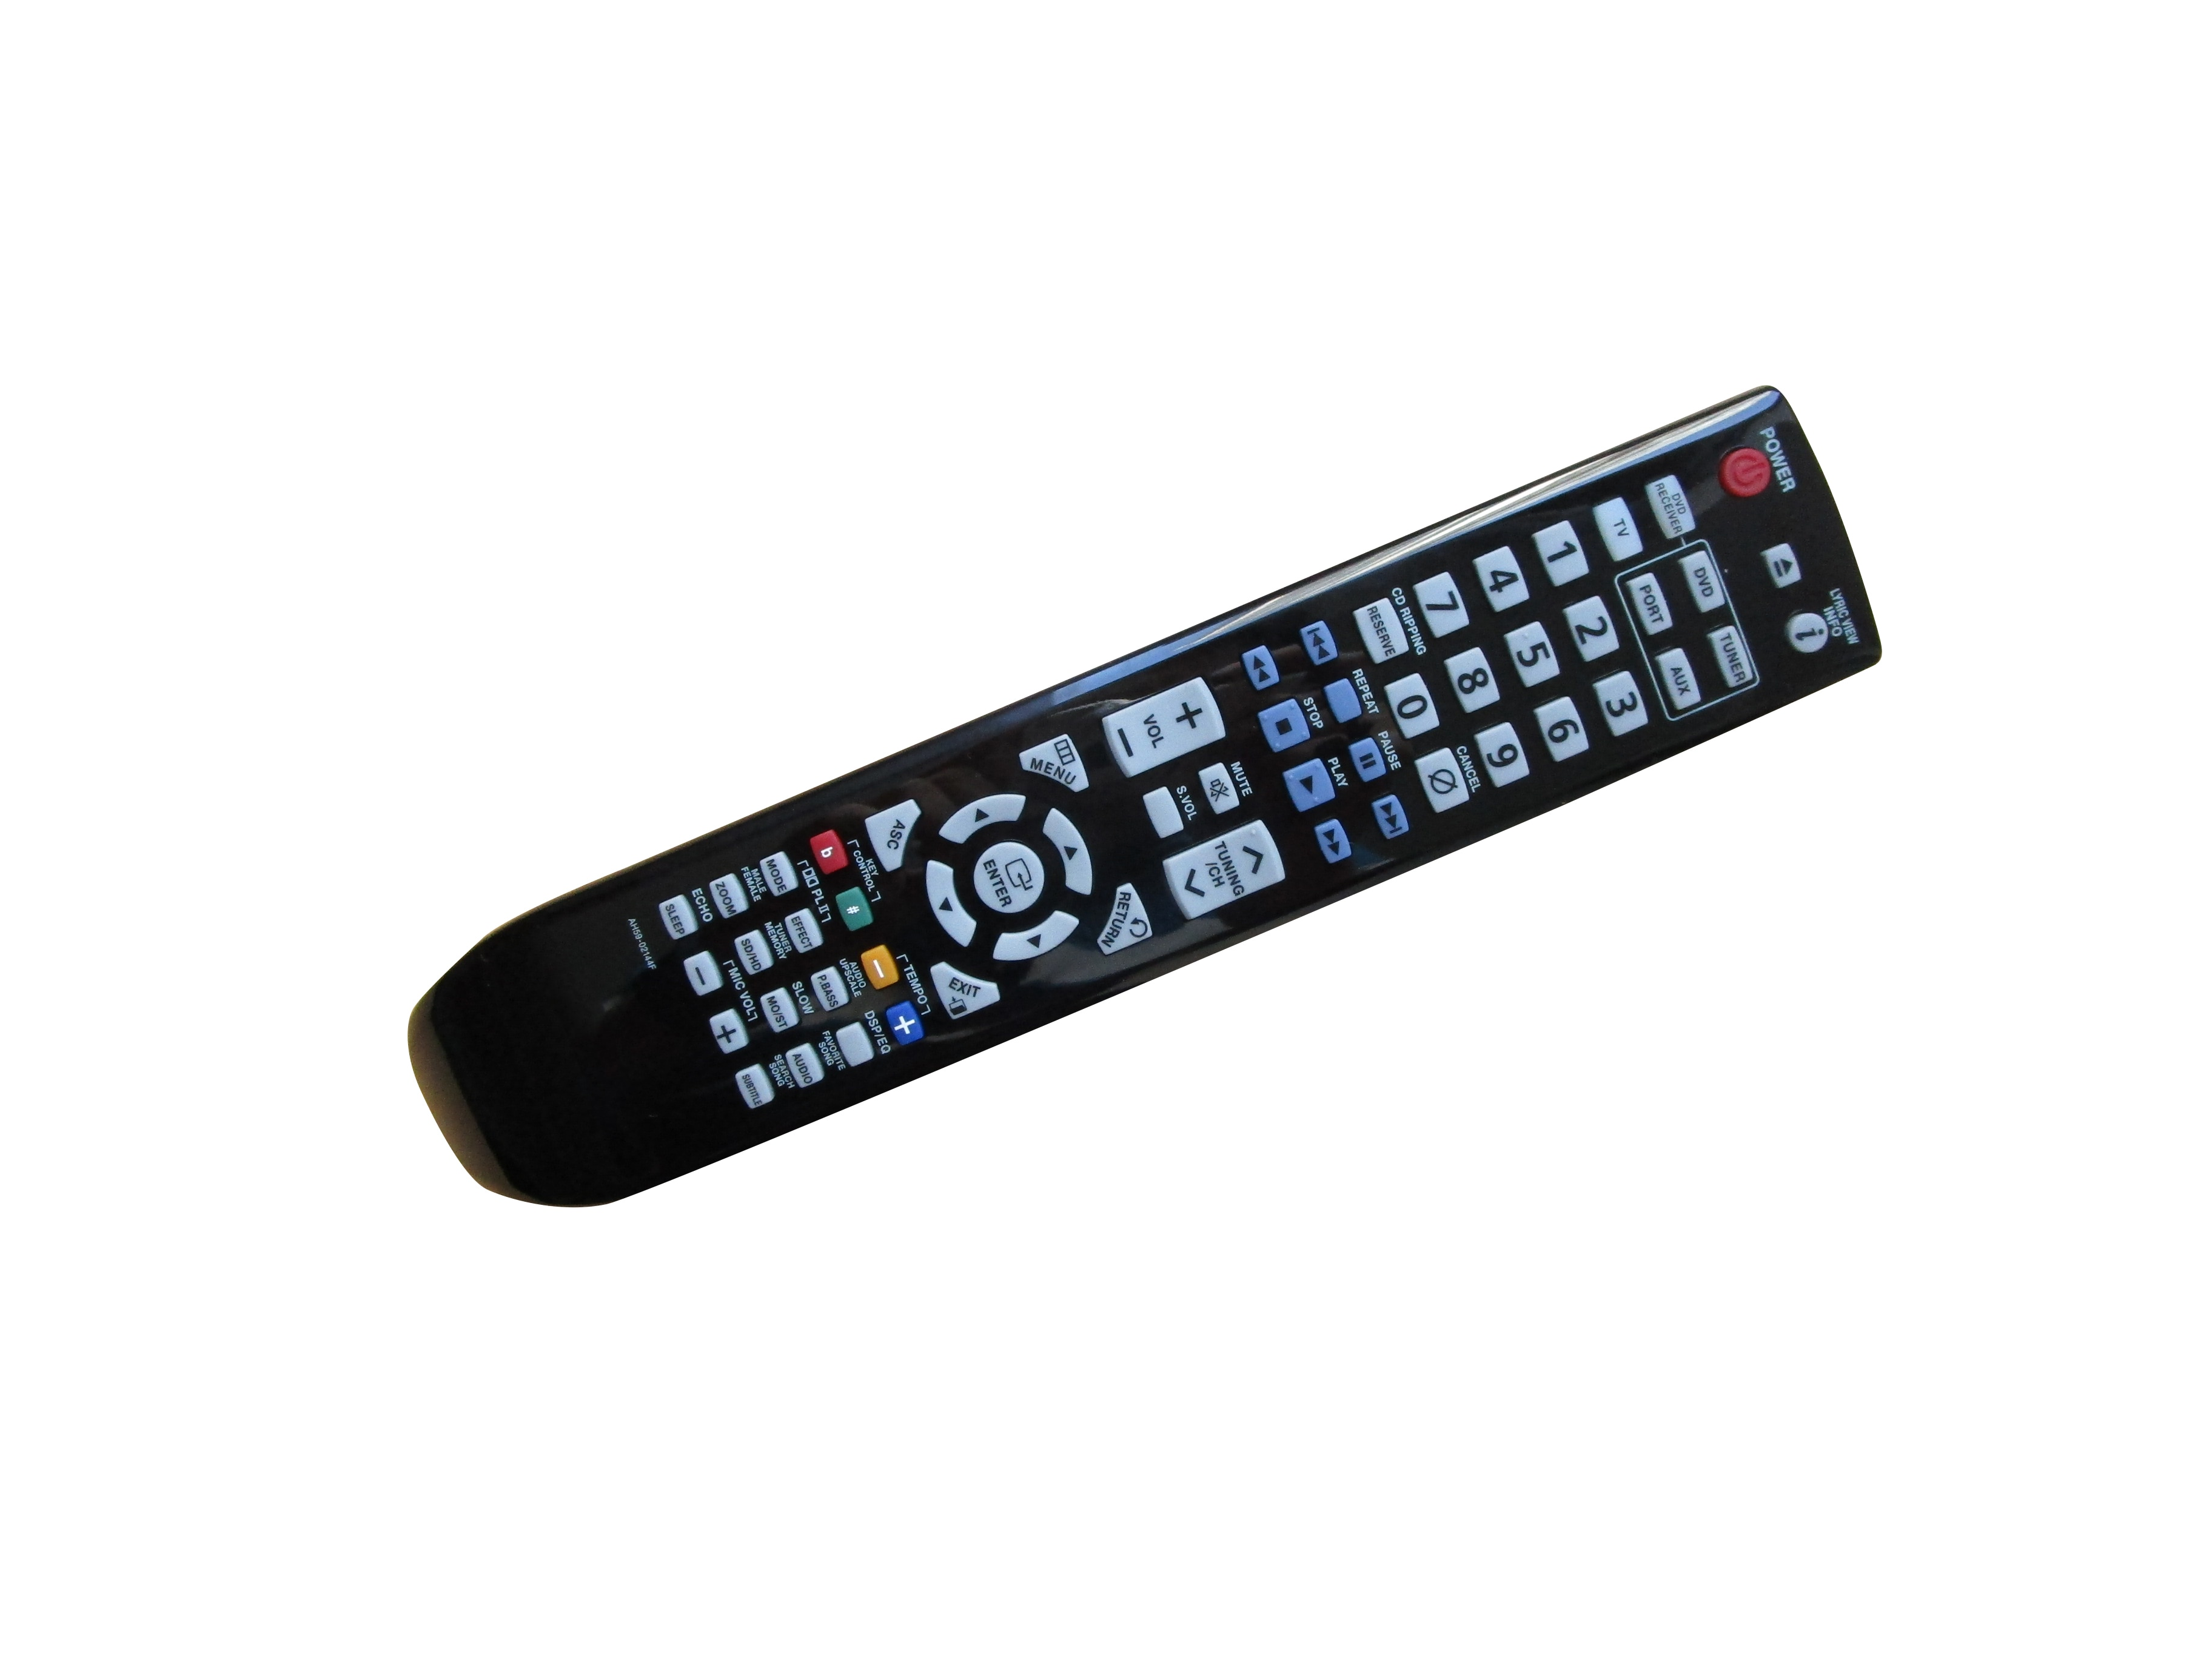 Remote Control For Samsung HT-Z520 HT-TZ522T HT-TZ422 HT-TZ425 HT-Z320 HT-TZ325R HT-TZ520T HT-TX625T/XAA DVD Home Theater System